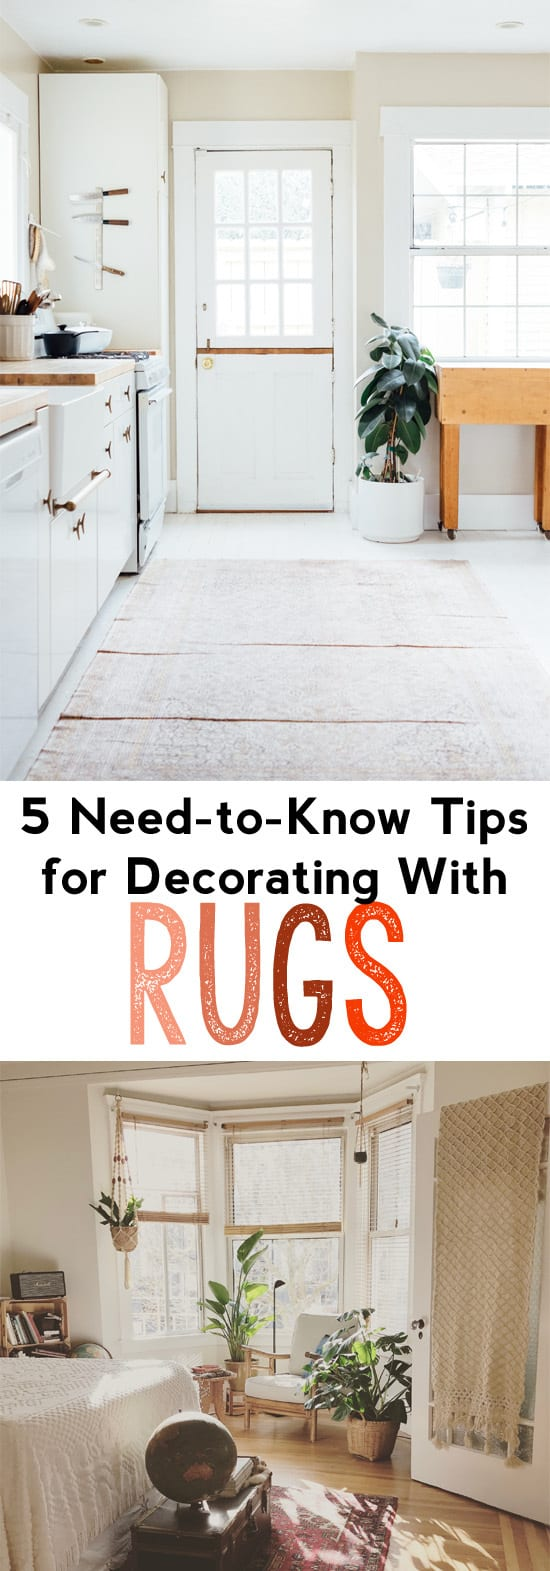 rug decorating tips